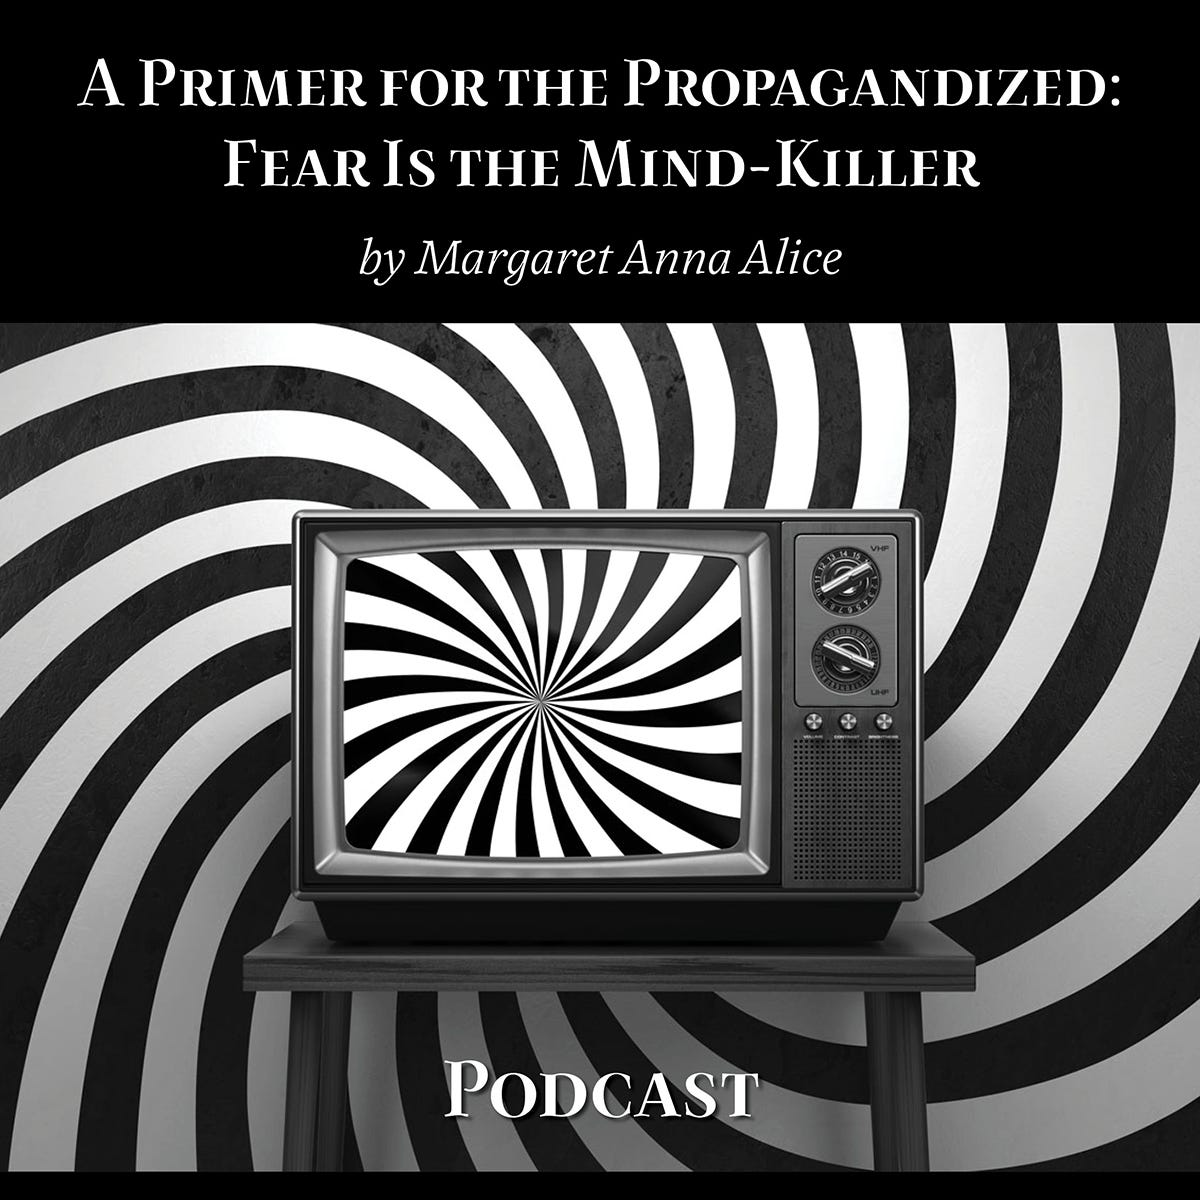 A Primer for the Propagandized: Fear Is the Mind Killer, Podcast Written and Read by Margaret Anna Alice Podcast